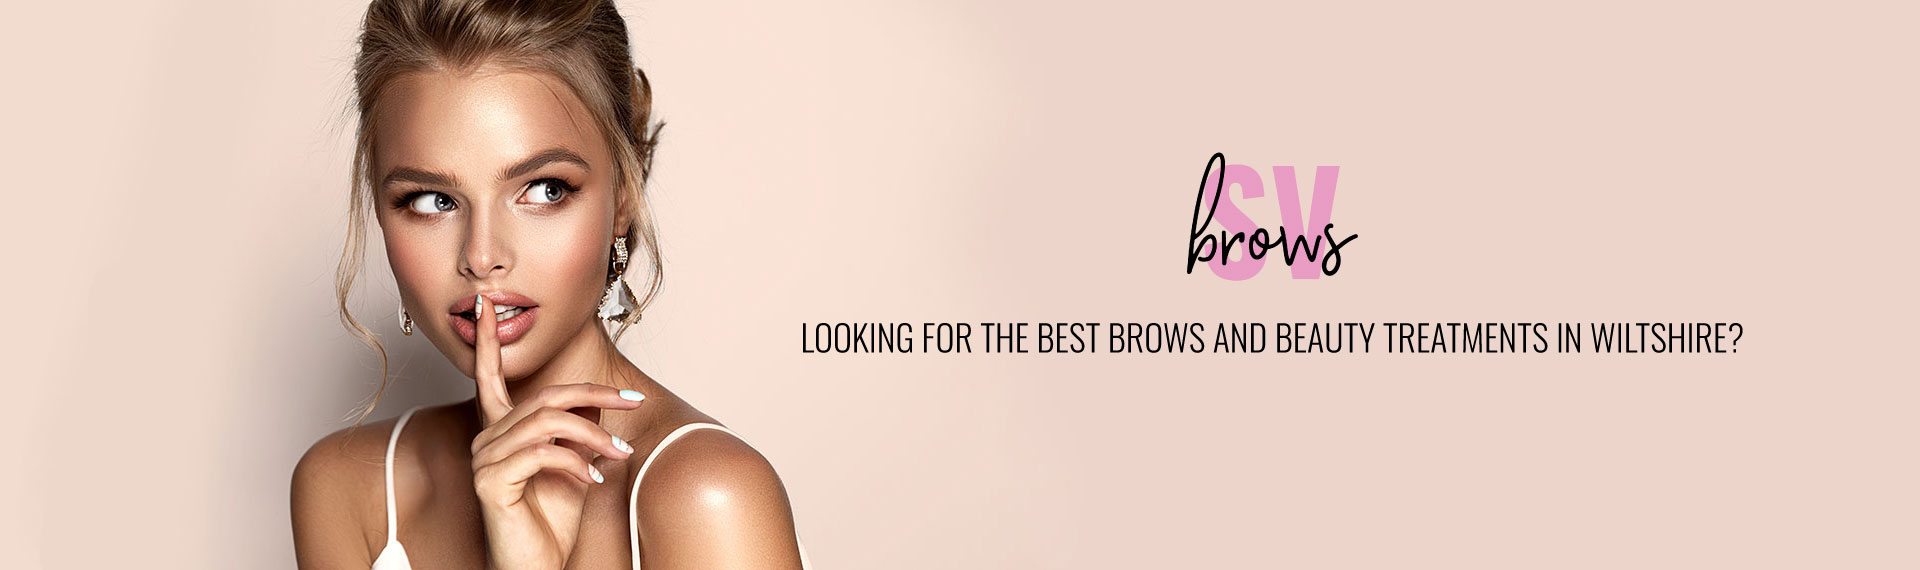 LOOKING FOR THE BEST BROWS AND BEAUTY TREATMENTS IN WILTSHIRE